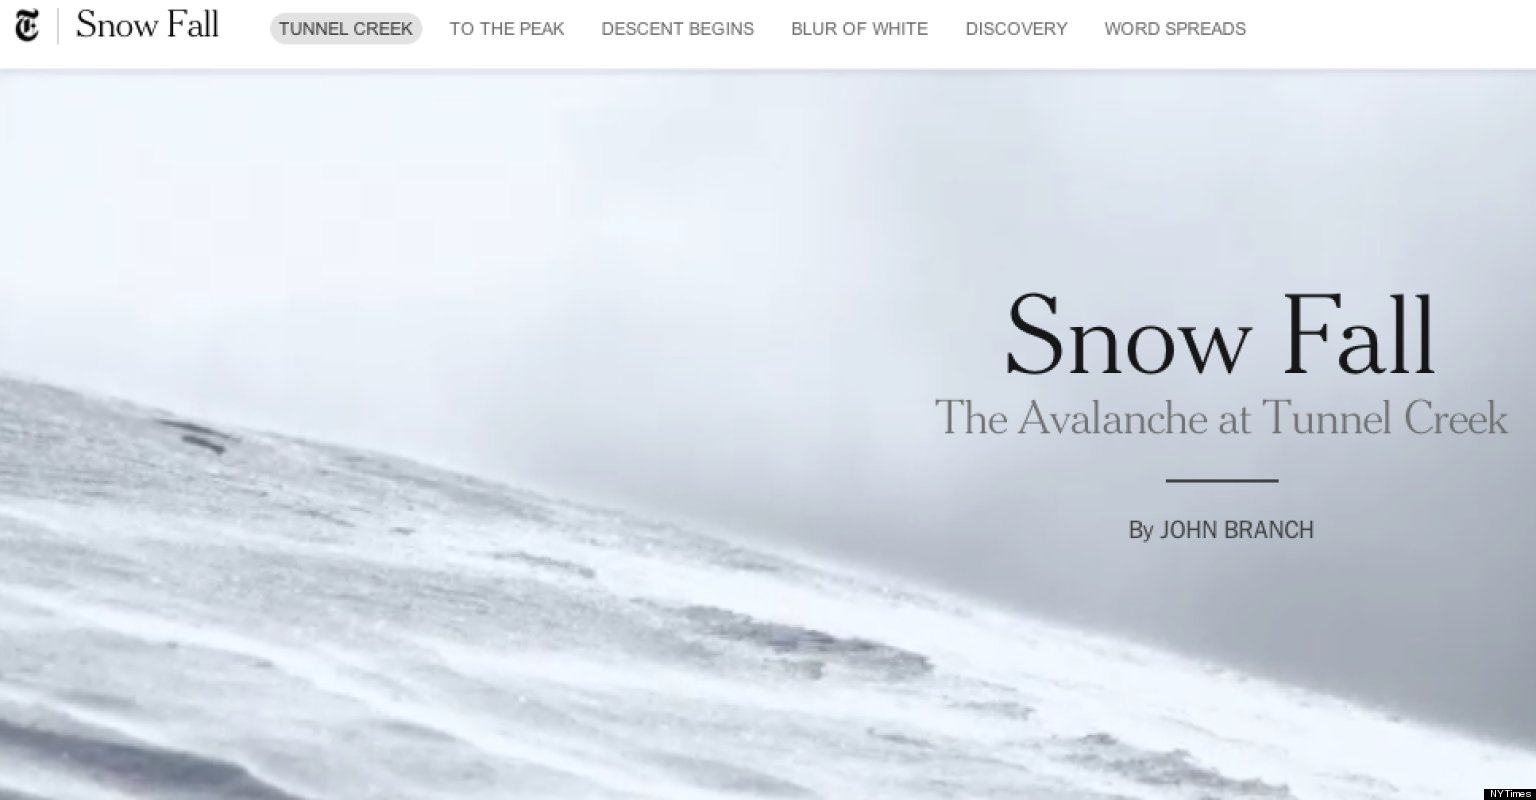 The New York Times story Snow Fall was considered a breakthrough in interactive, multimedia rich web design.